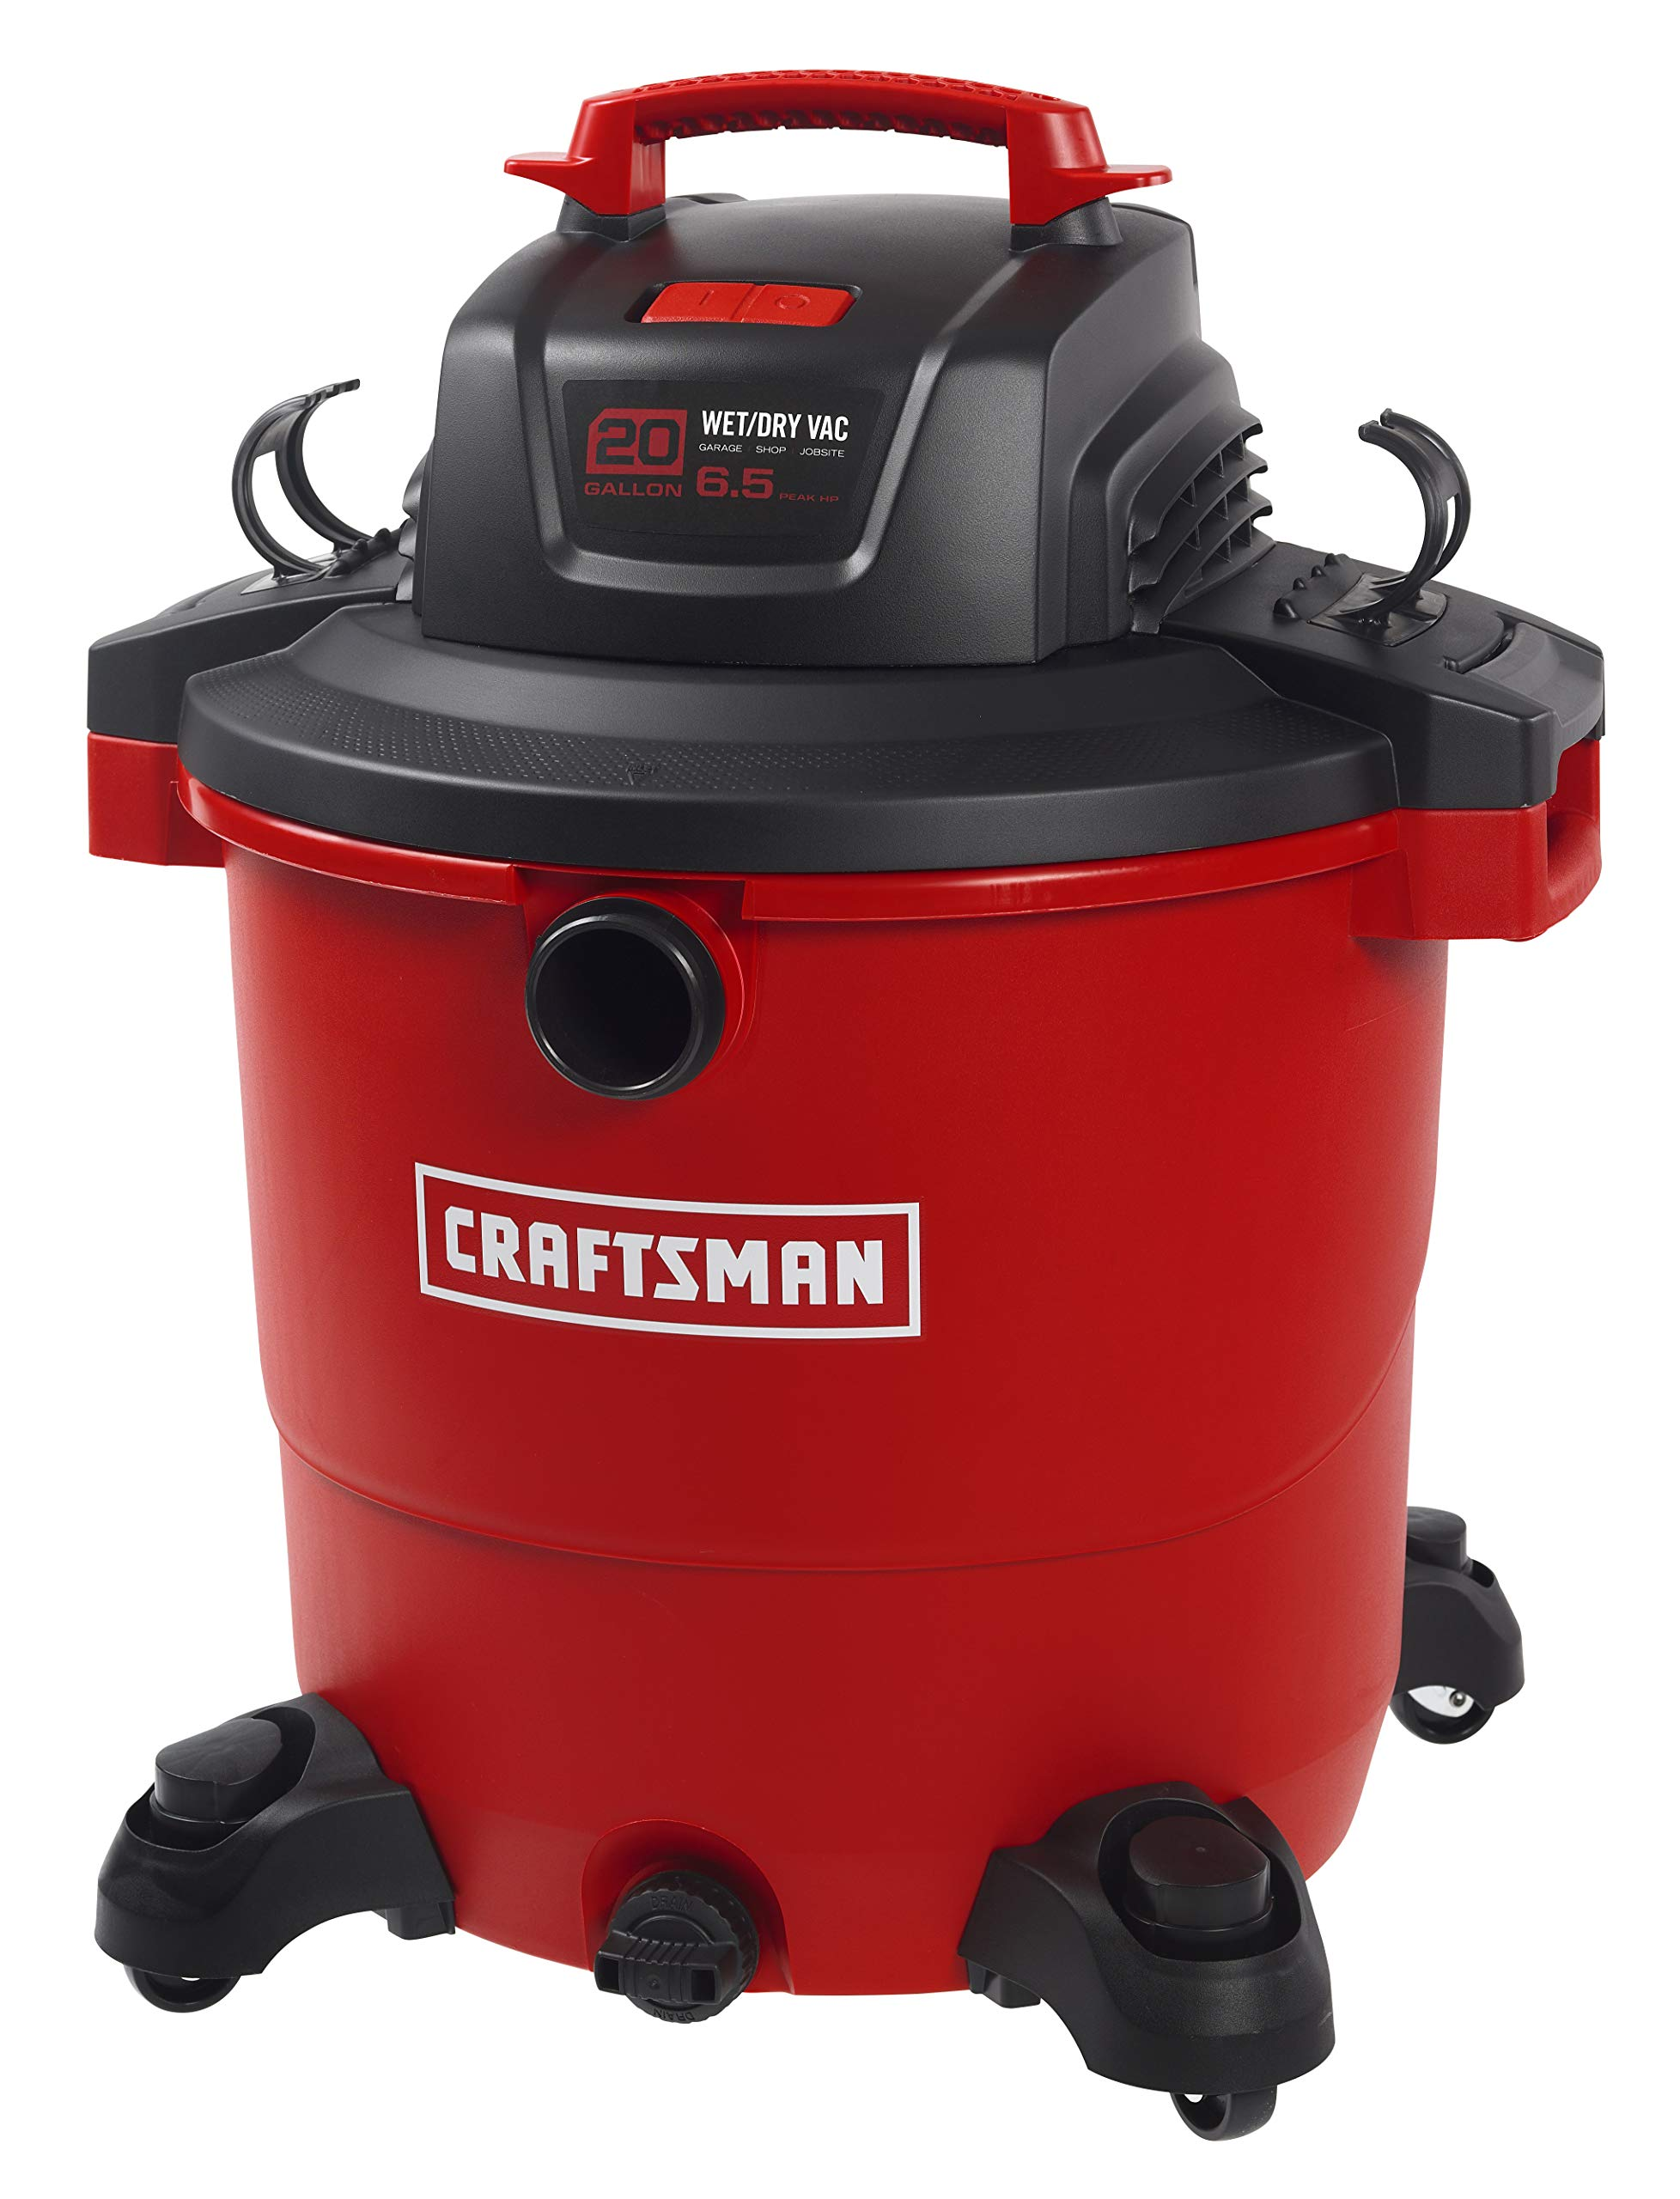 CRAFTSMAN 17596 20 Gallon 6.5 Peak HP Wet/Dry Vac, Heavy-Duty Shop Vacuum with Attachments by Craftsman (Image #3)